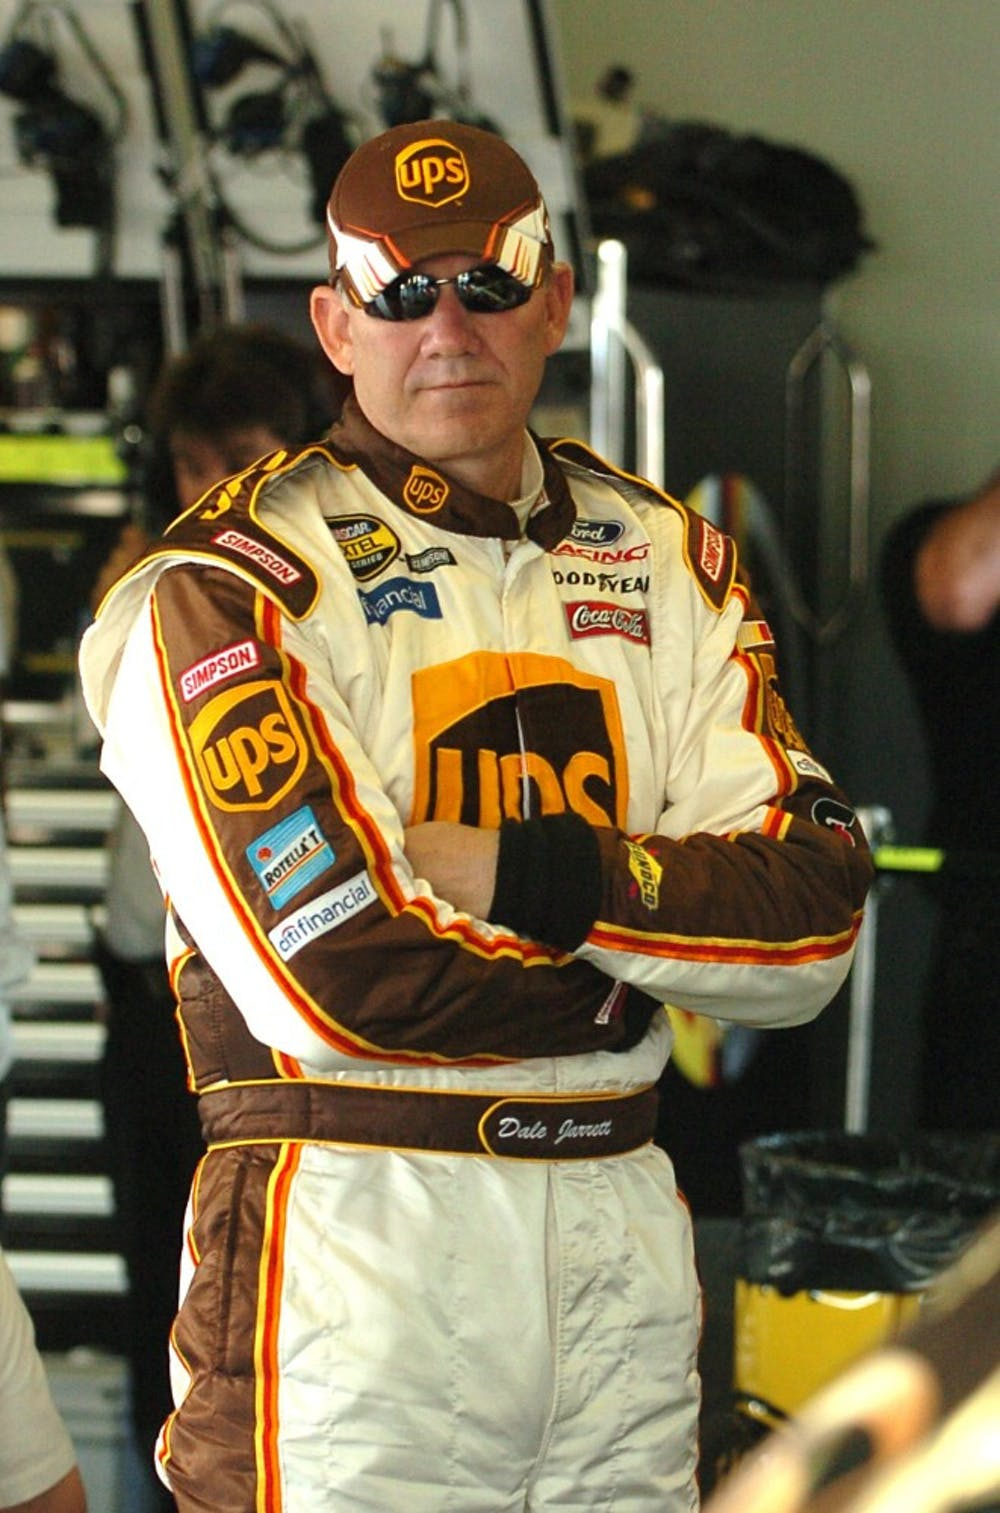 KRT SPORTS STORY SLUGGED: NASCAR KRT PHOTOGRAPH BY JOHN RAOUX/ORLANDO SENTINEL (MIAMI OUT) (February 16) DAYTONA, FL -- Dale Jarrett, who will be on the pole for the Daytona 500, takes a break in the garage while his crew works on his car at the Daytona International Speedway in Daytona Beach, Florida, on Wednesday, February 16, 2005. (mvw) 2005